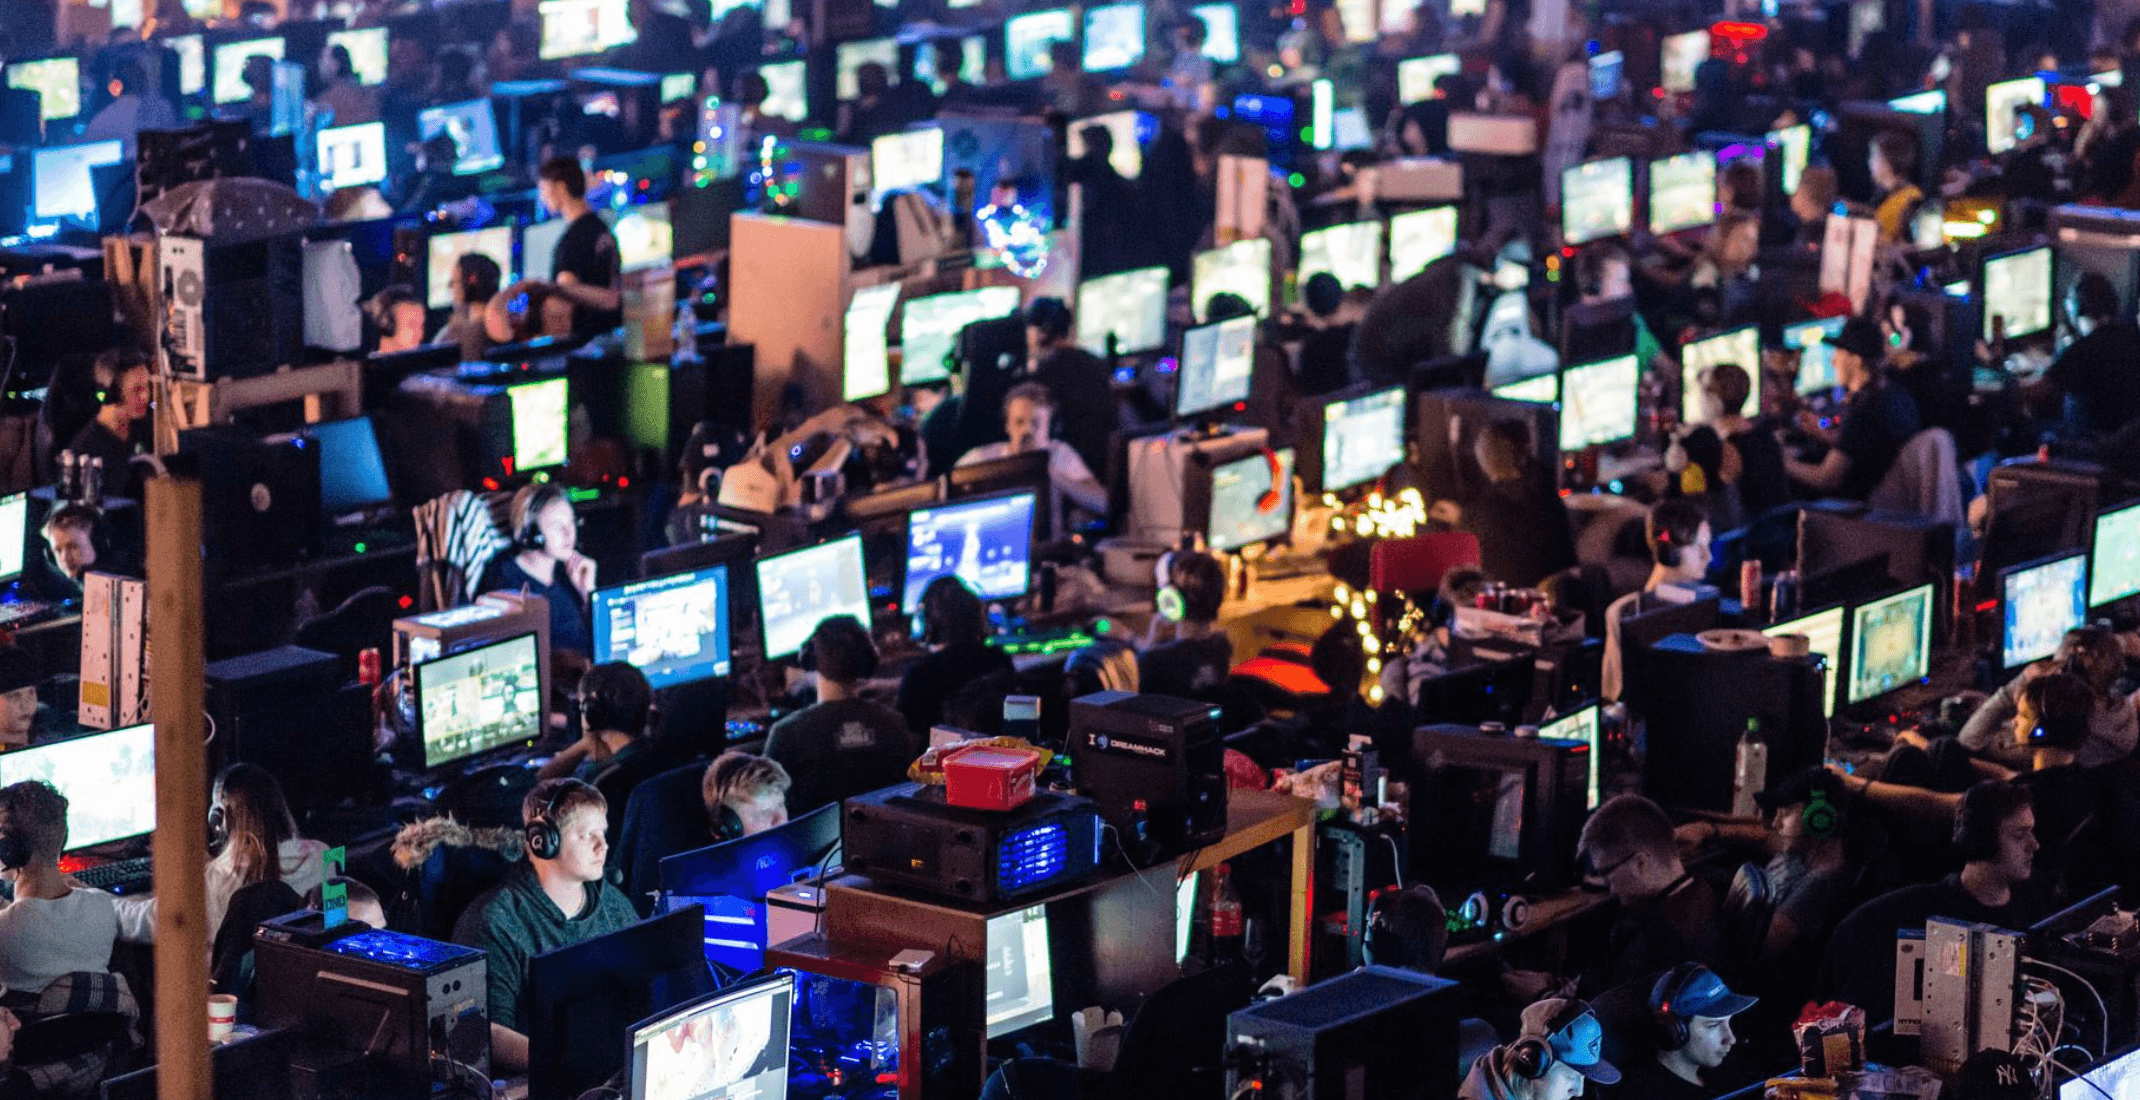 Find out when the world's largest competitive video game festival is coming to Montreal